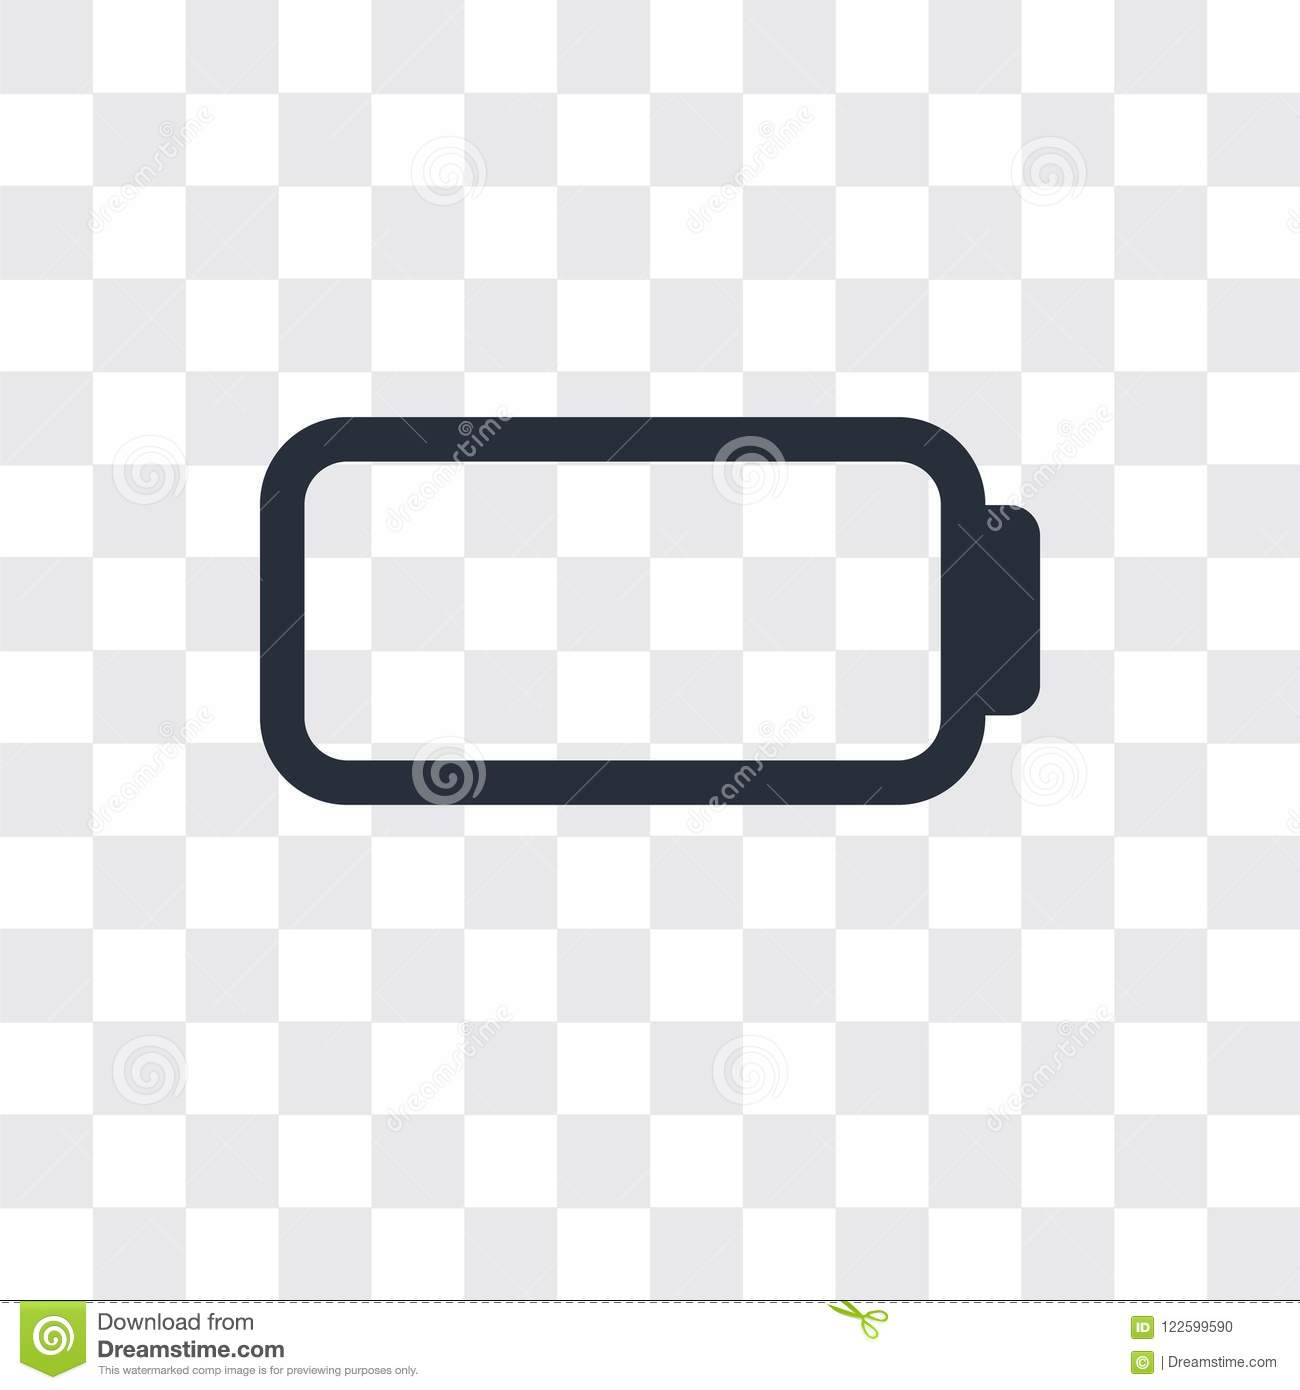 battery vector icon on transparent background battery logo design stock vector illustration of industry accumulator 122599590 https www dreamstime com battery vector icon transparent background battery logo concept battery vector icon transparent background battery logo image122599590